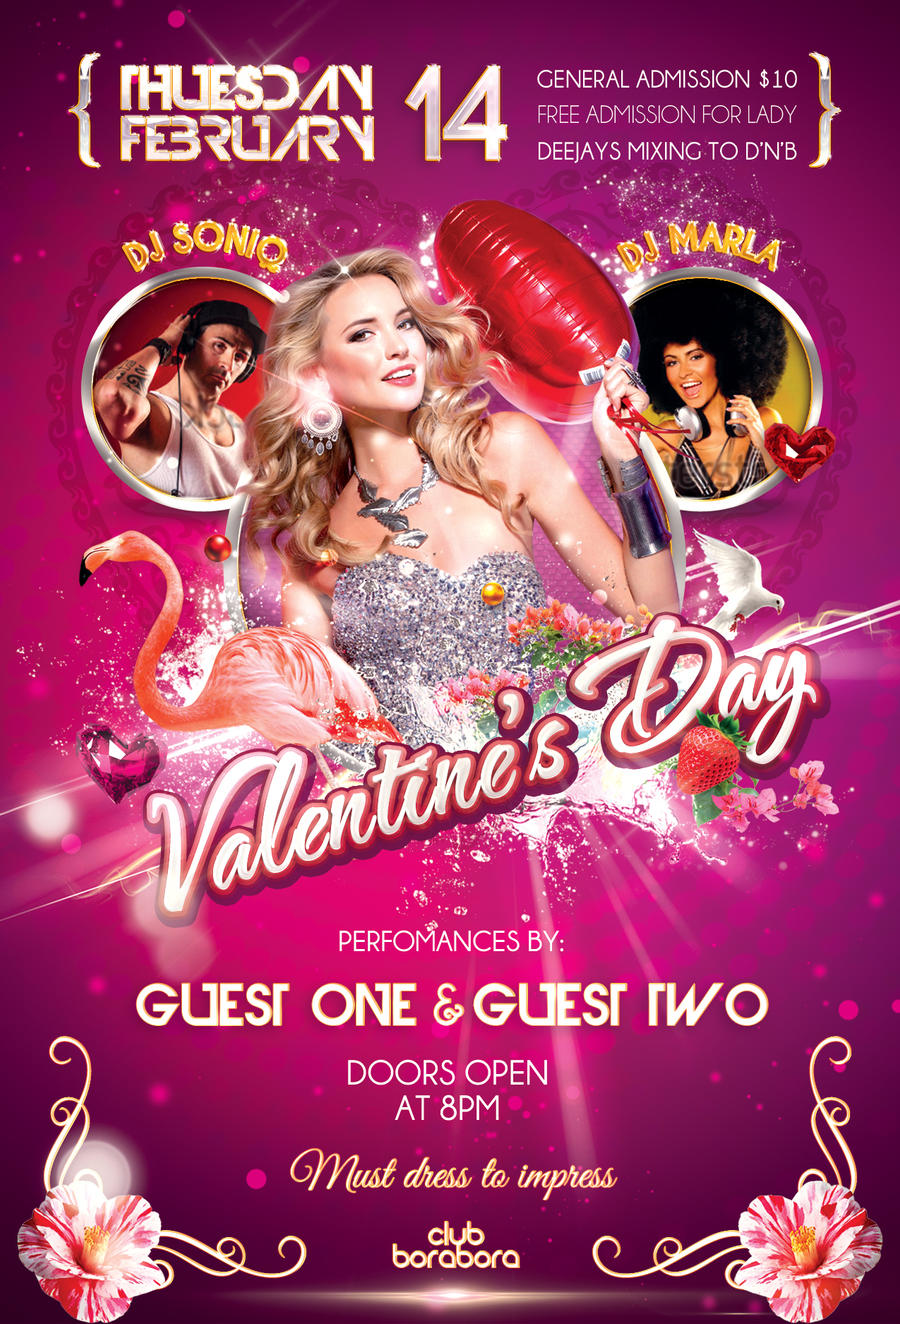 valentines day party psd flyer template by bestofflyers on deviantart. Black Bedroom Furniture Sets. Home Design Ideas